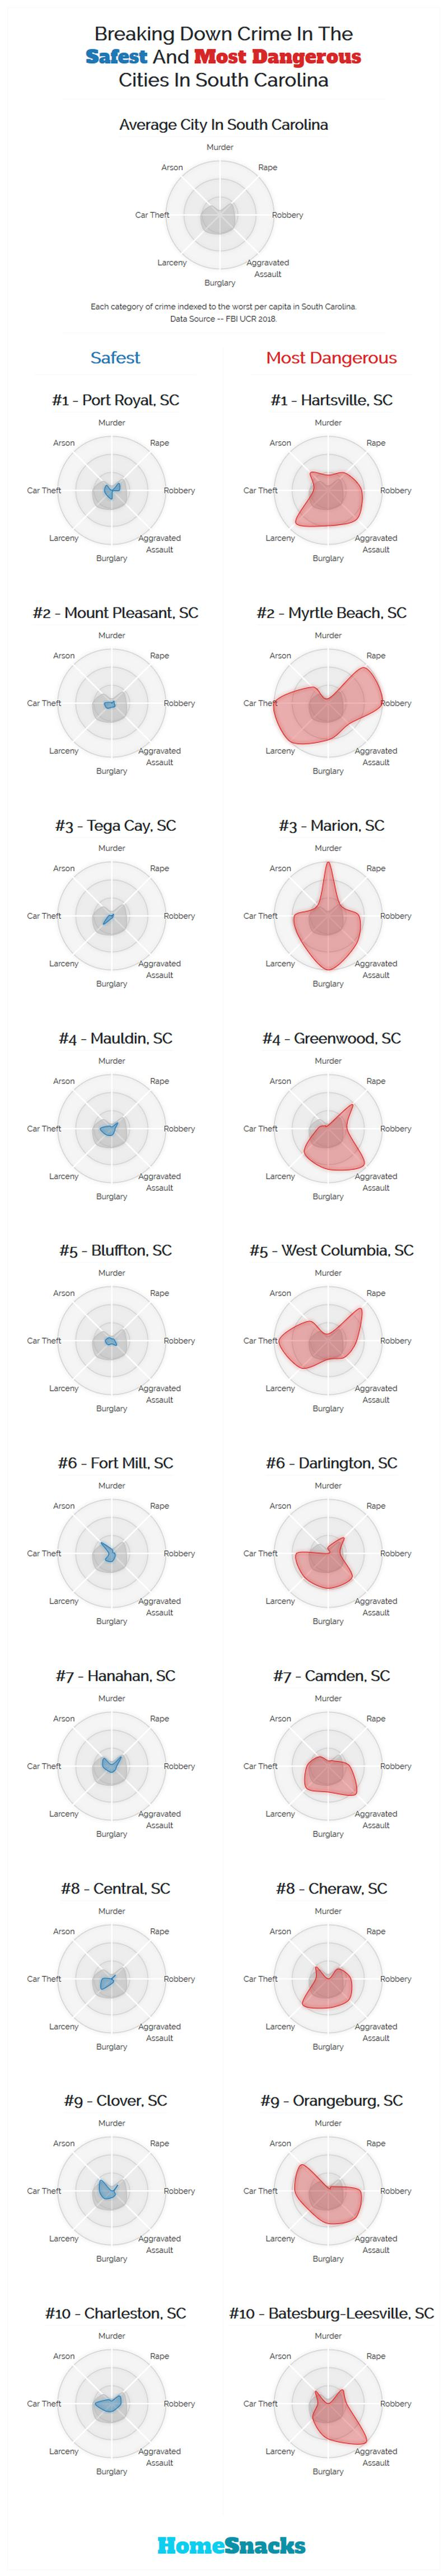 Safest Cities in South Carolina Breakdown